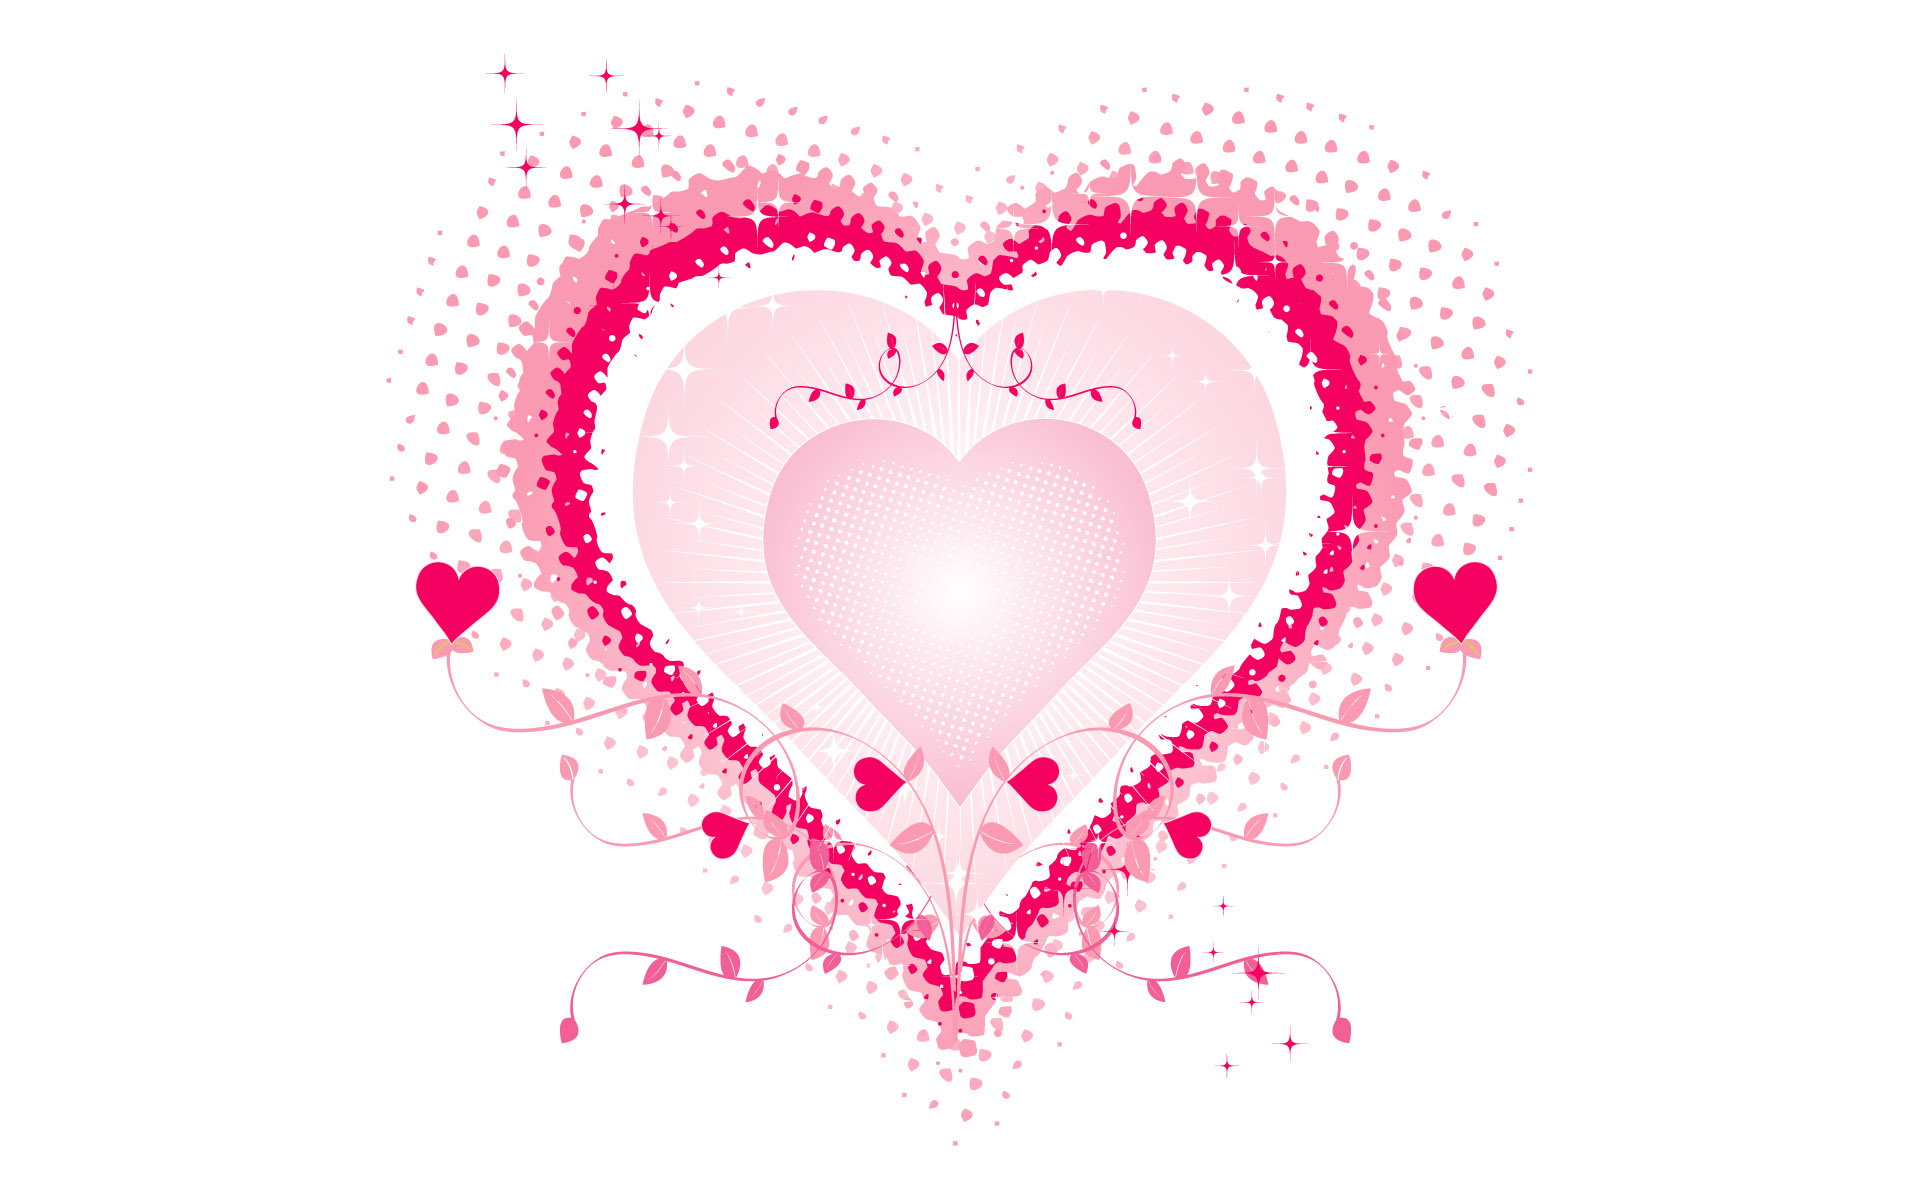 February 14 Valentines Day Hearts PPT Backgrounds